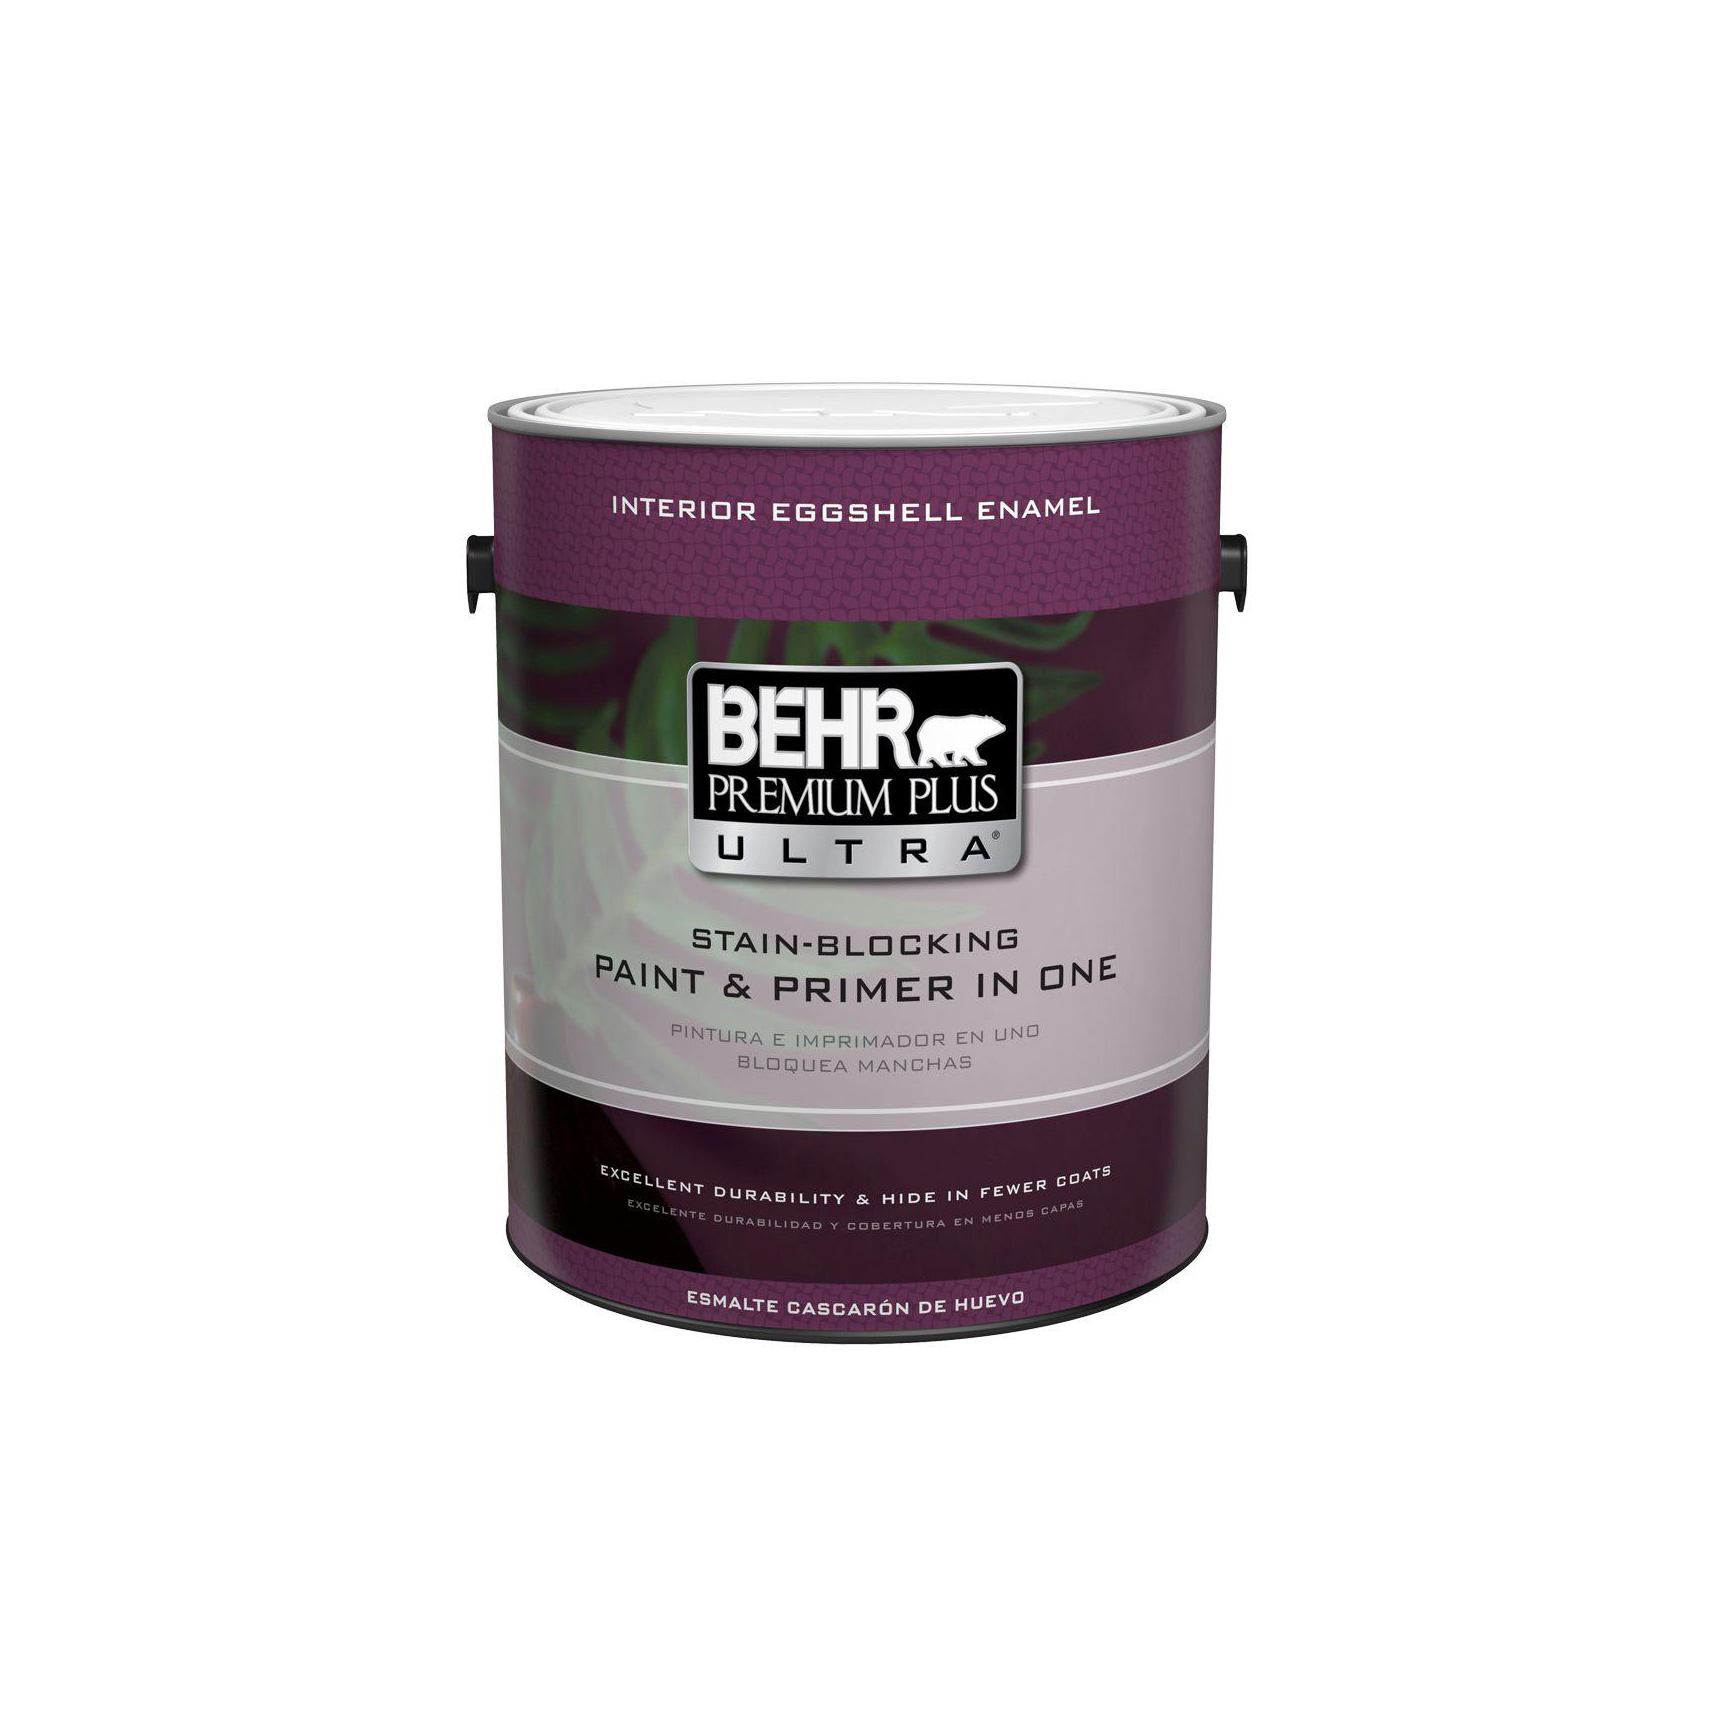 BEHR Premium Plus Ultra Pure White Eggshell Enamel Interior Paint